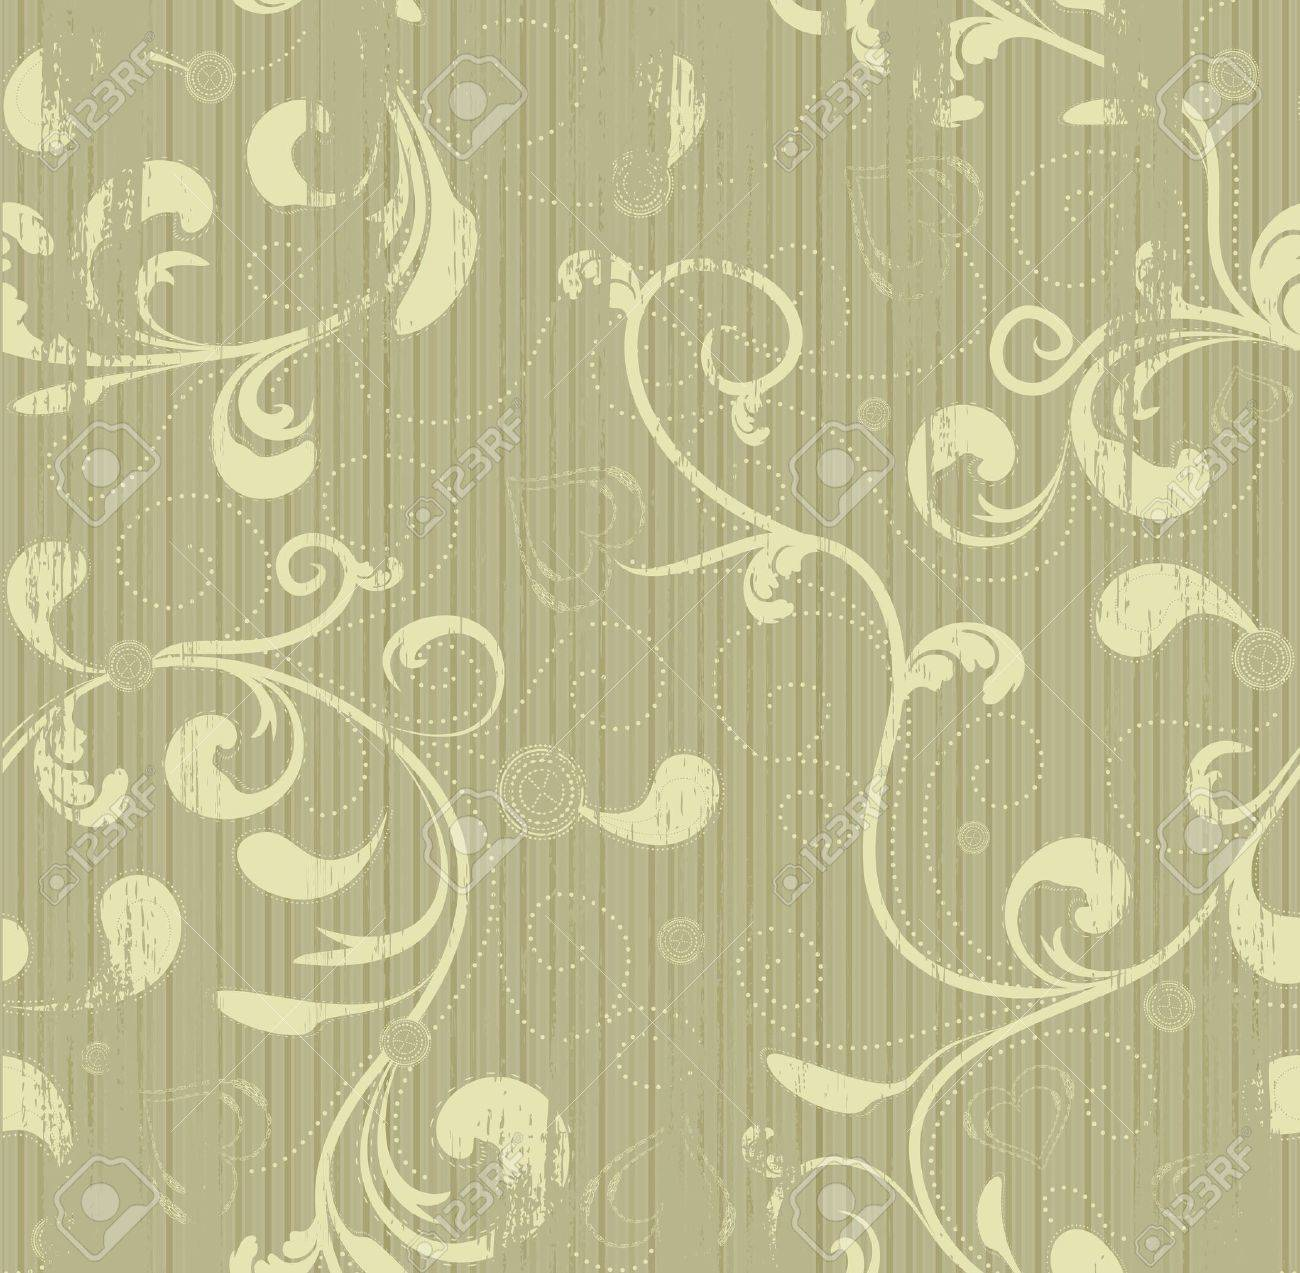 Grunge floral seamless vector beauty background - 9577272